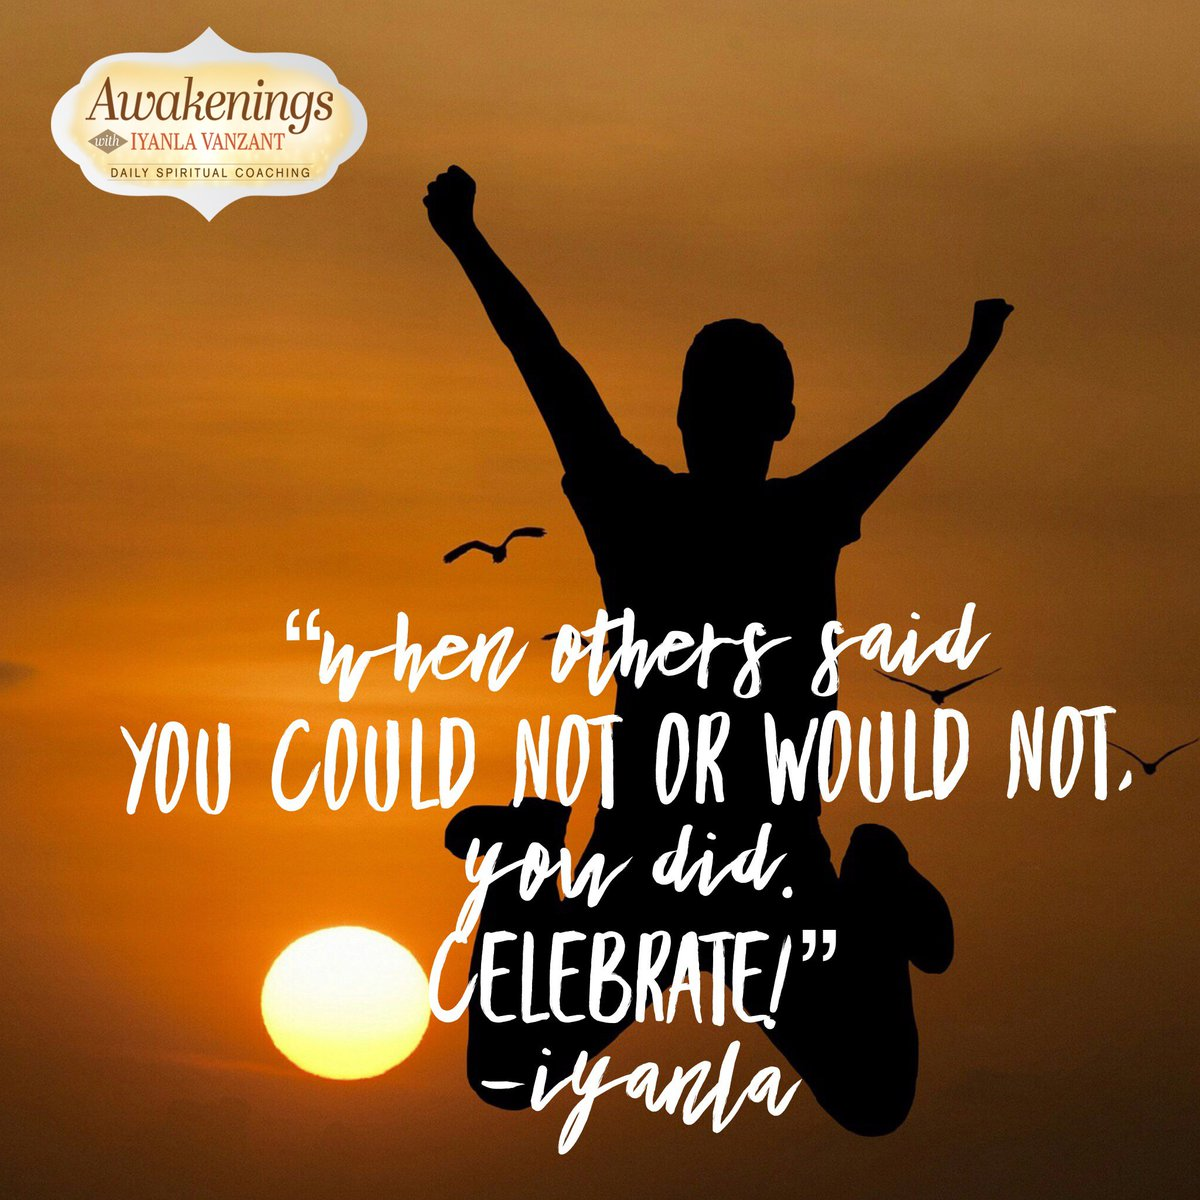 To celebrate is to praise someone or something for all that it is, all that it has done, and all that will result because of it. With this in mind, can see you the value and importance of celebrating yourself? #awakeningsapp